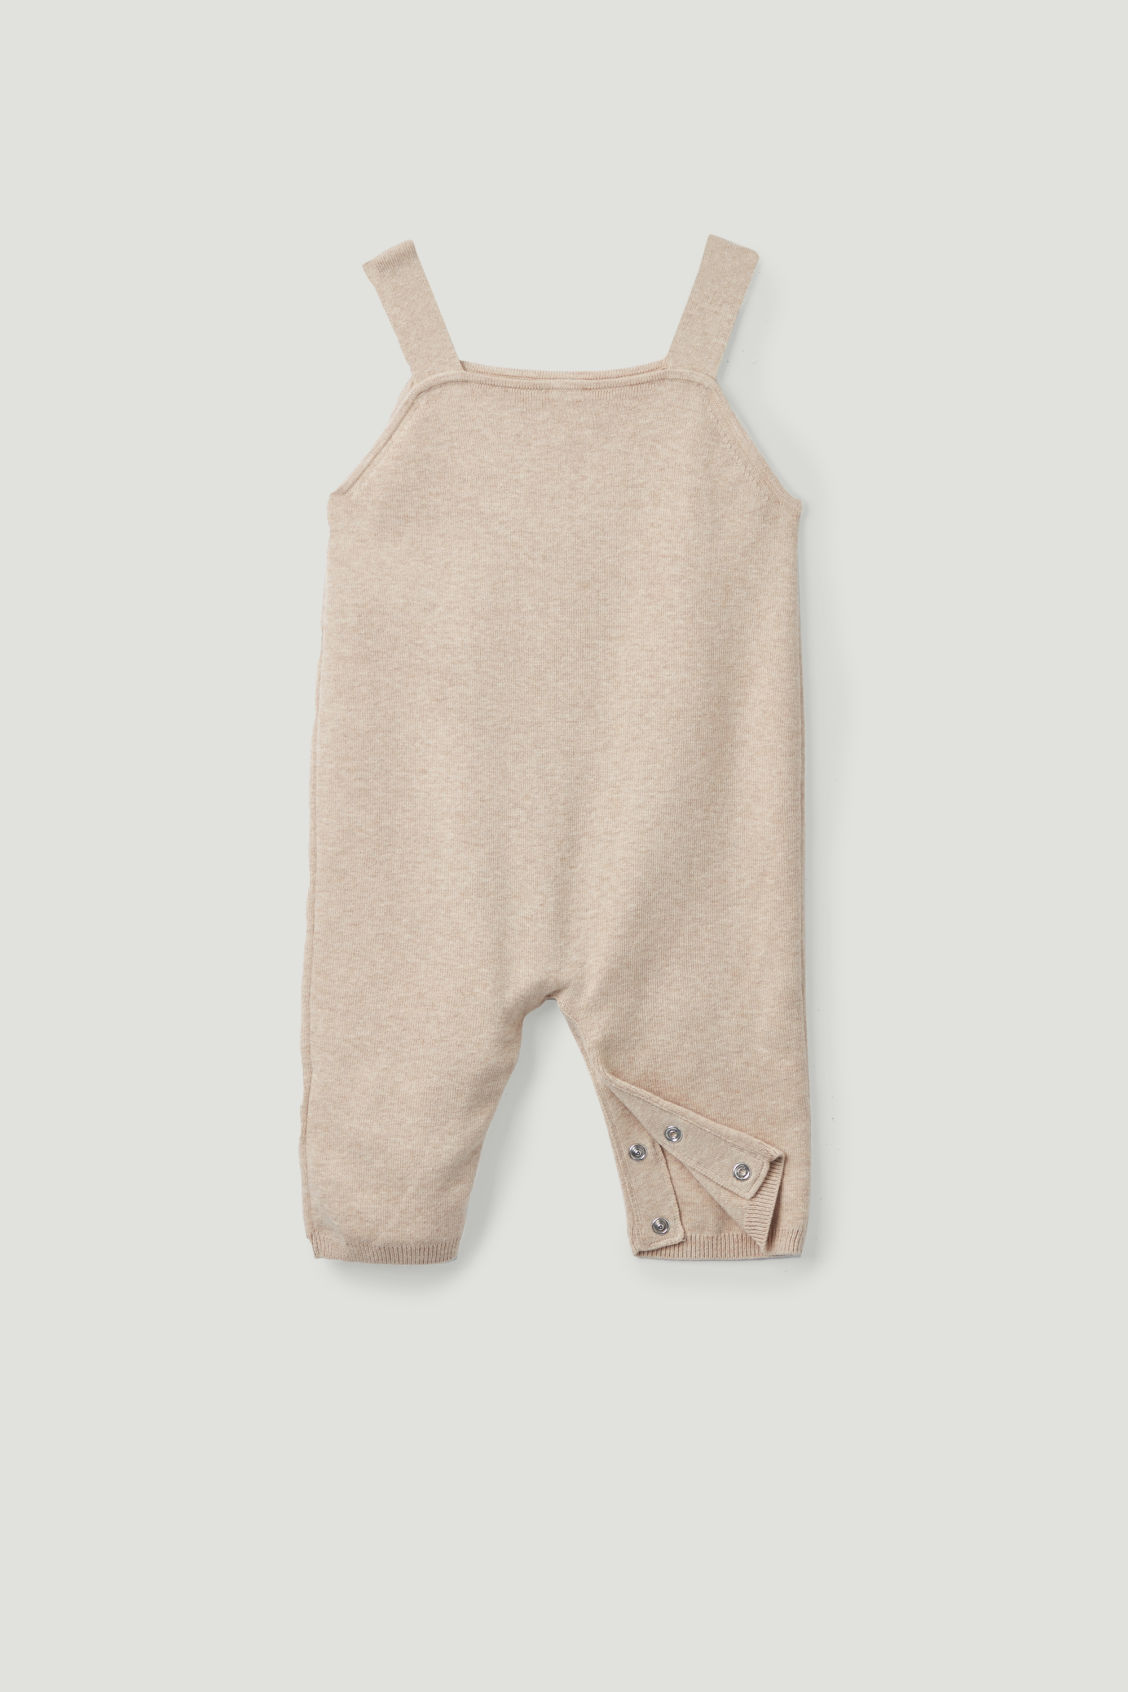 2ce33daaa Detailed image of Cos cotton-knit romper in beige